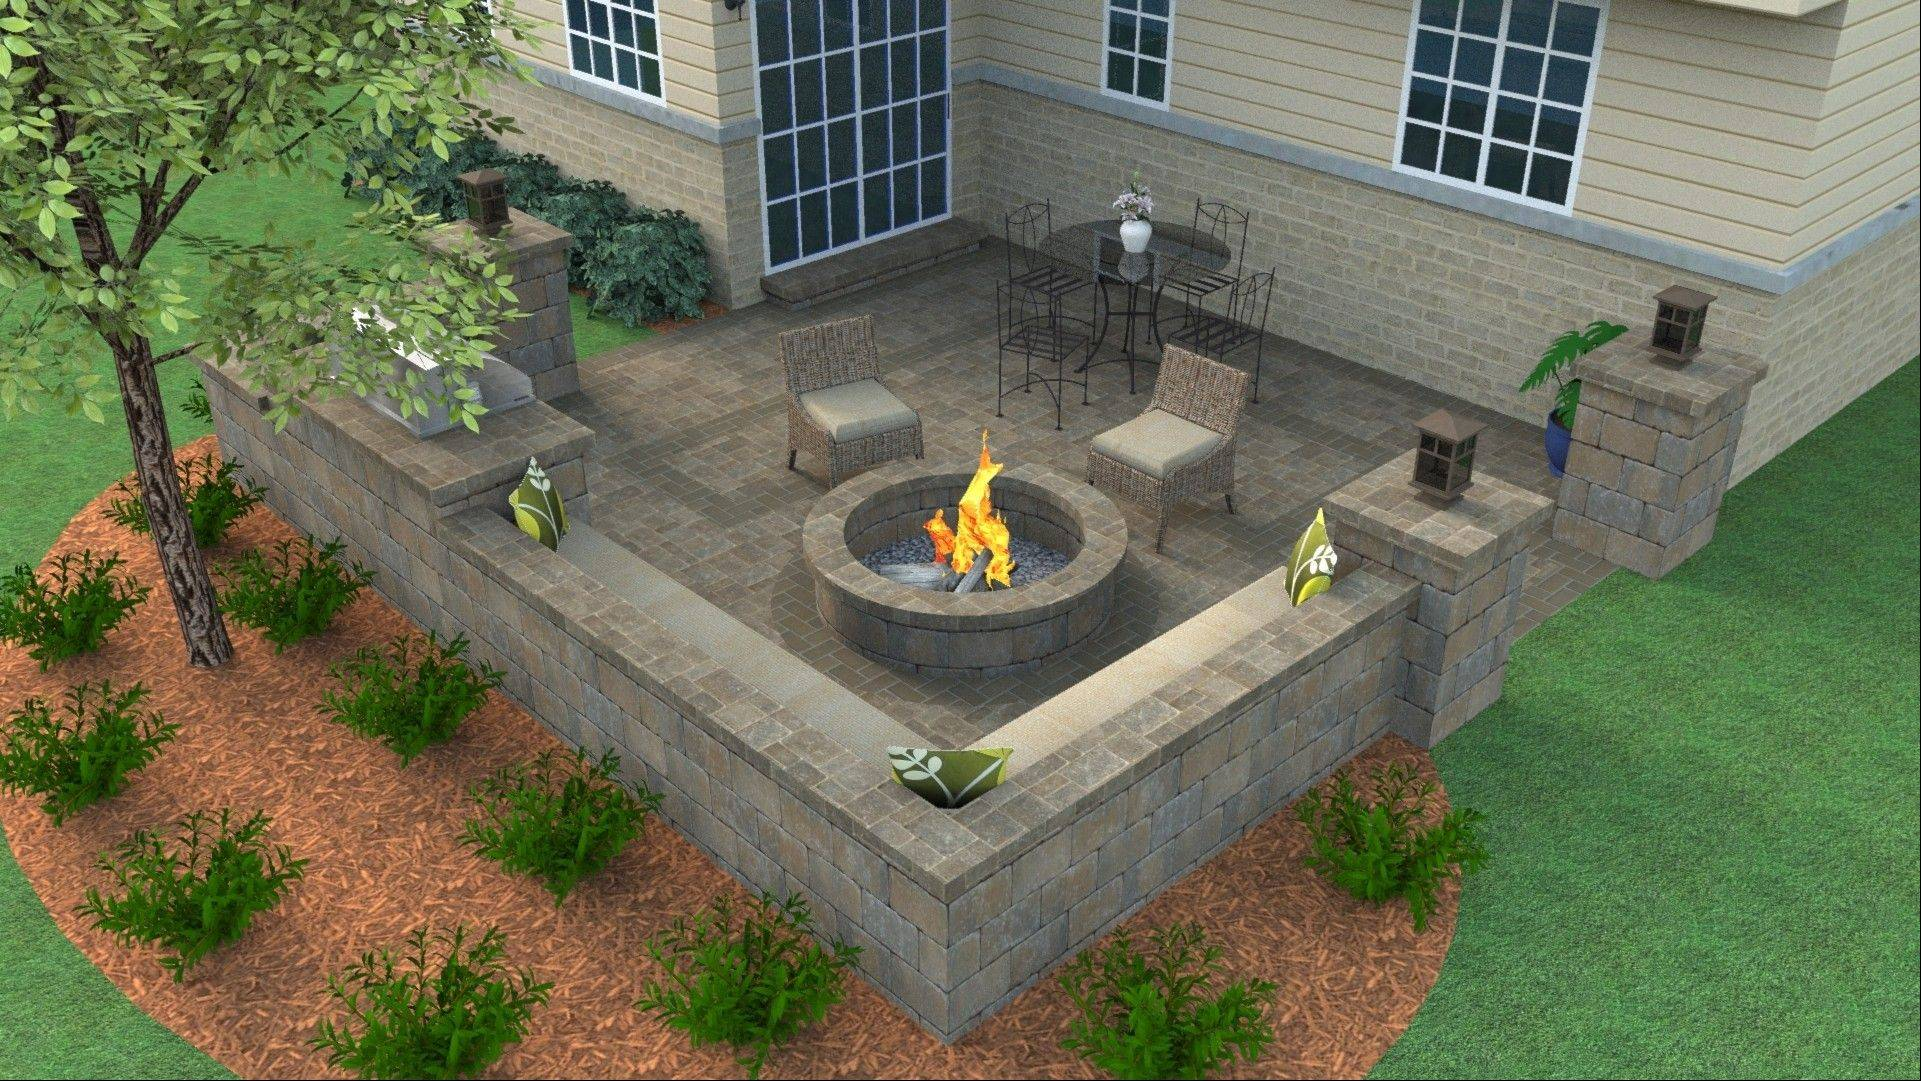 Zeeck was delighted with the plan that Belgard Hardscapes designed for her backyard. She won a makeover worth more than $20,000, including the pavers, lighting, a water feature, landscaping and installation of all the materials.